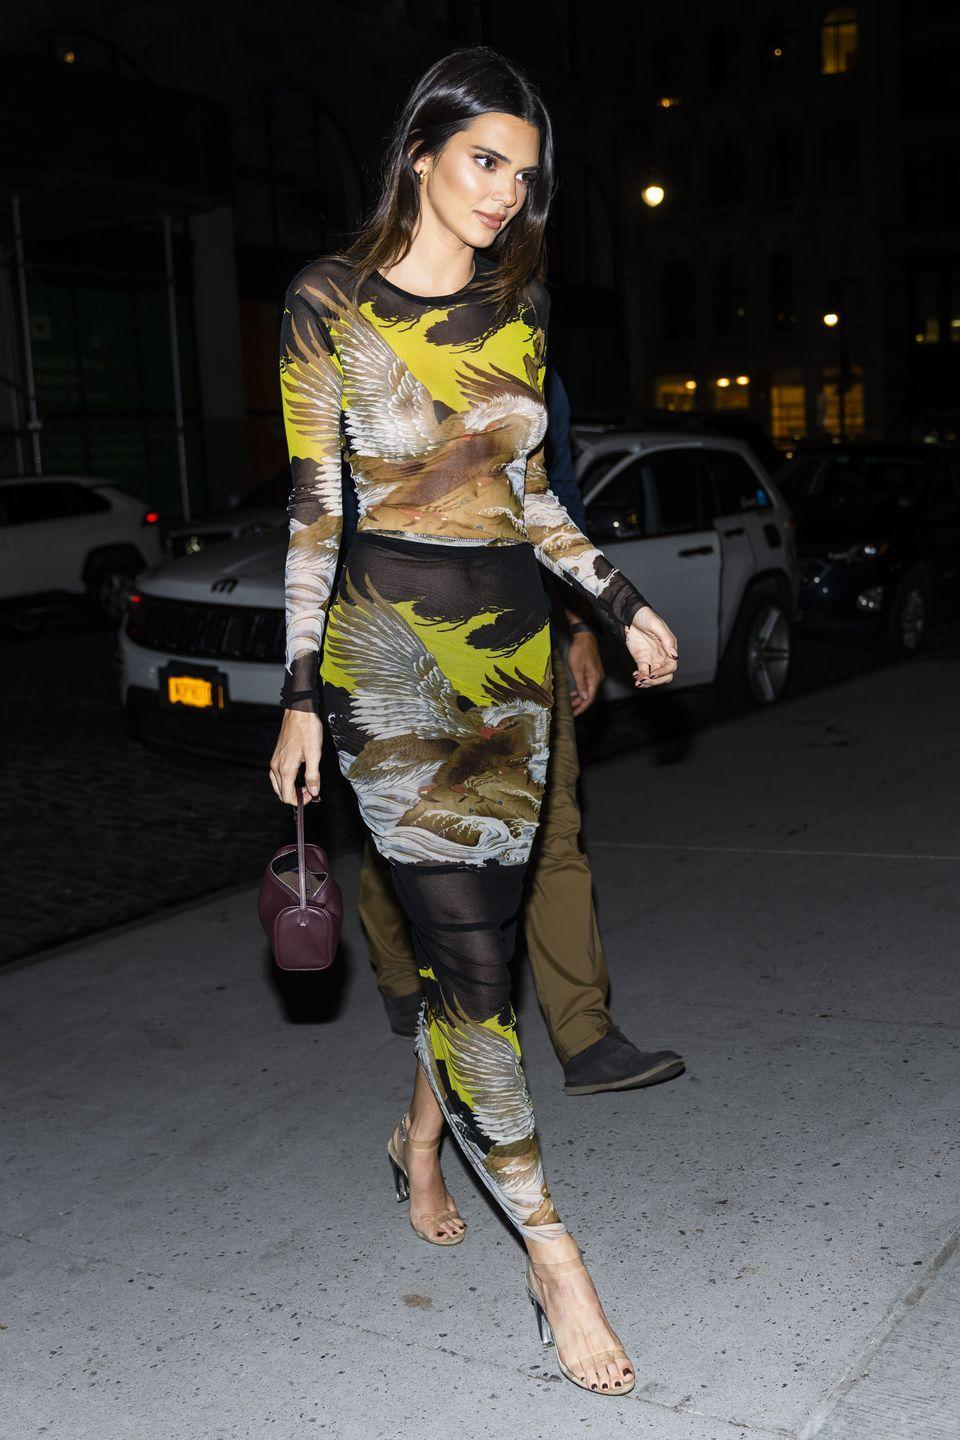 <p>The 25-year-old model wore a skin-tight vintage Jean Paul Gaultier dress for a 818 tequila part and dinner with her sister Kourtney Kardashian. </p><p>The 'Soleil' dress is from the 1990s and features an eagle and waves printed in black, brown and yellow tones. </p>